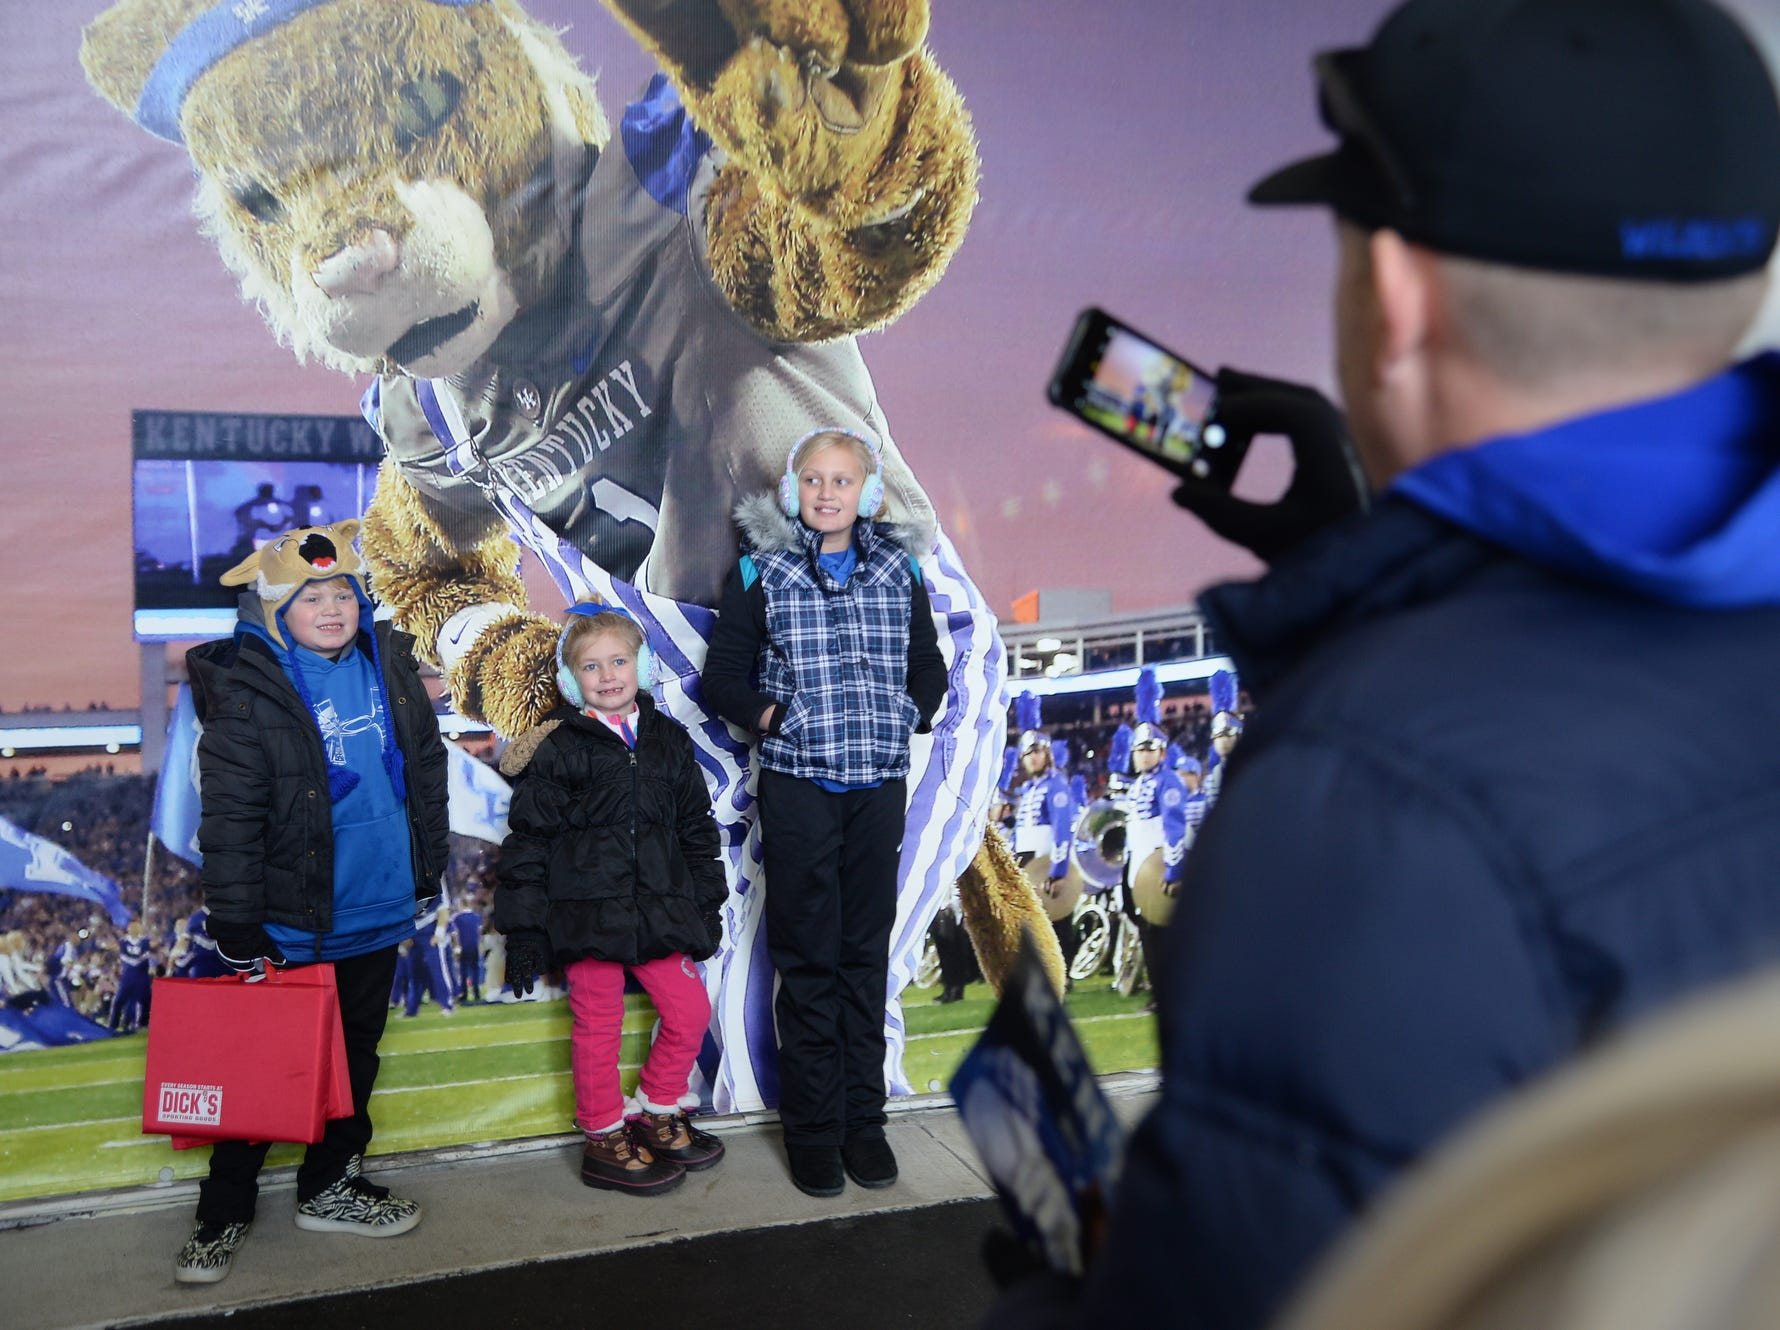 UK fans get their photo made in front of the Wildcat before the University of Kentucky football game against Middle Tennessee at Kroger Field in Lexington, Kentucky on Saturday, November 17, 2018.